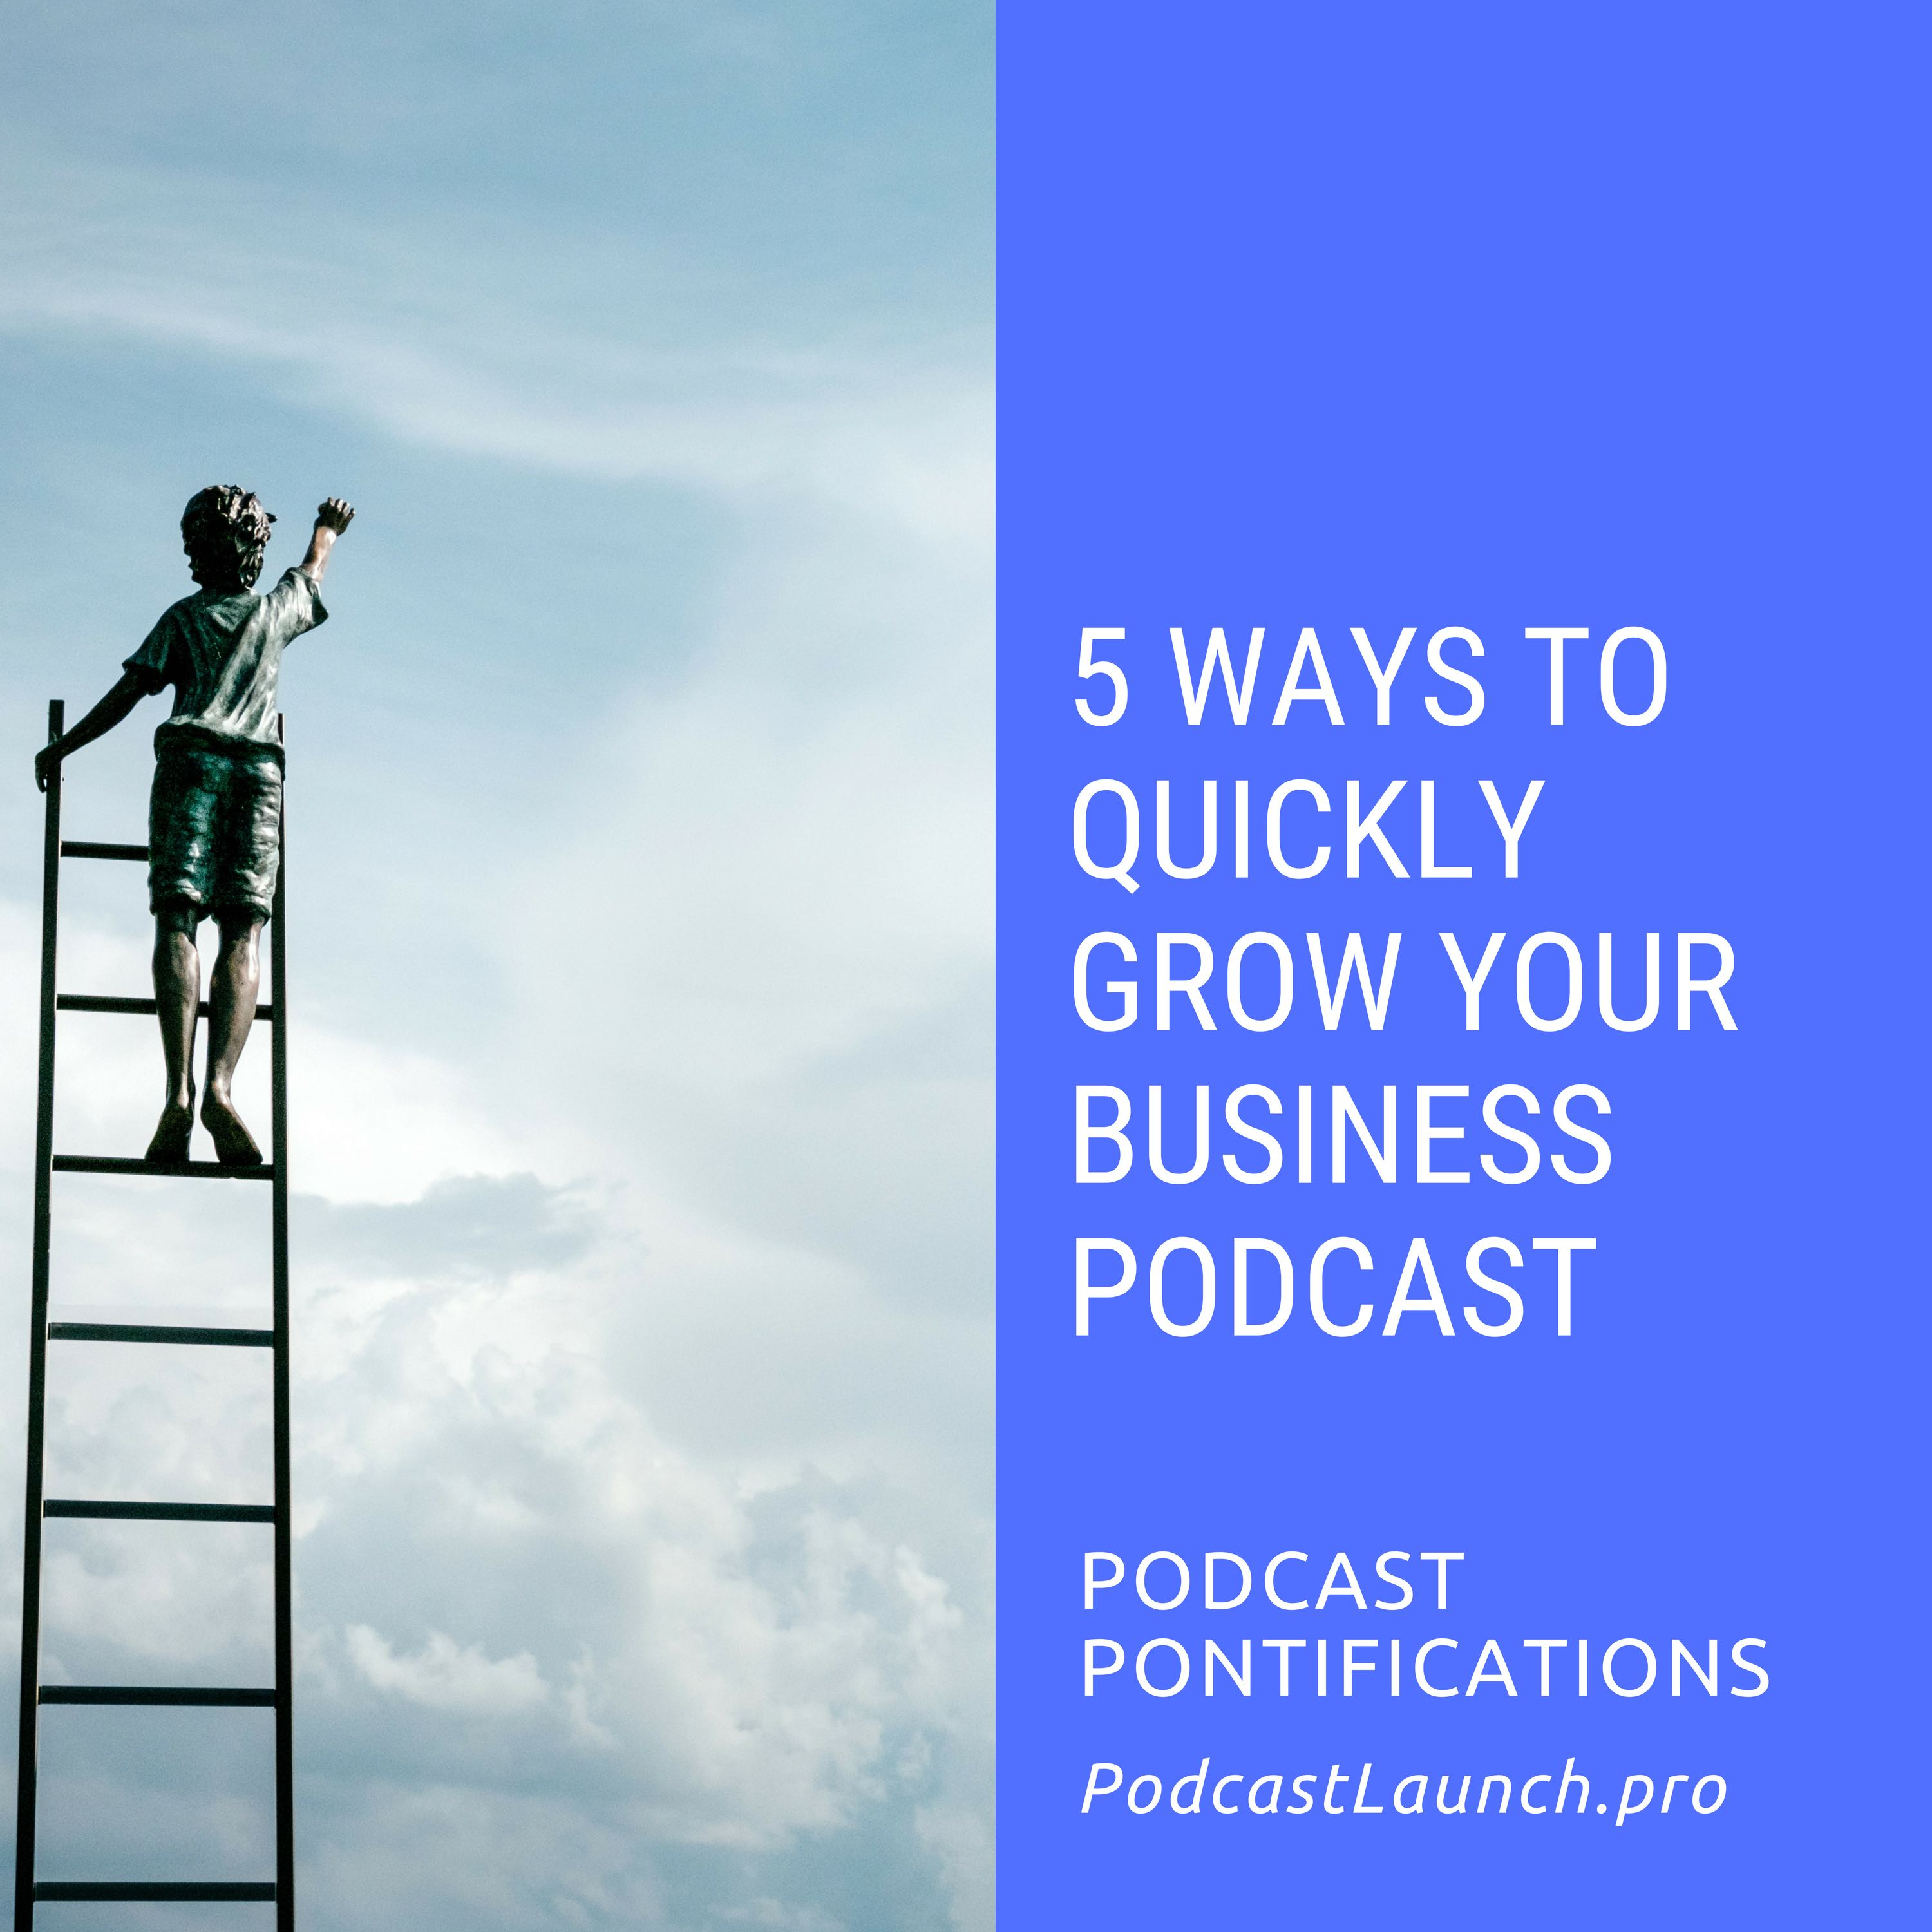 5 Ways To Quickly Grow Your Business Podcast